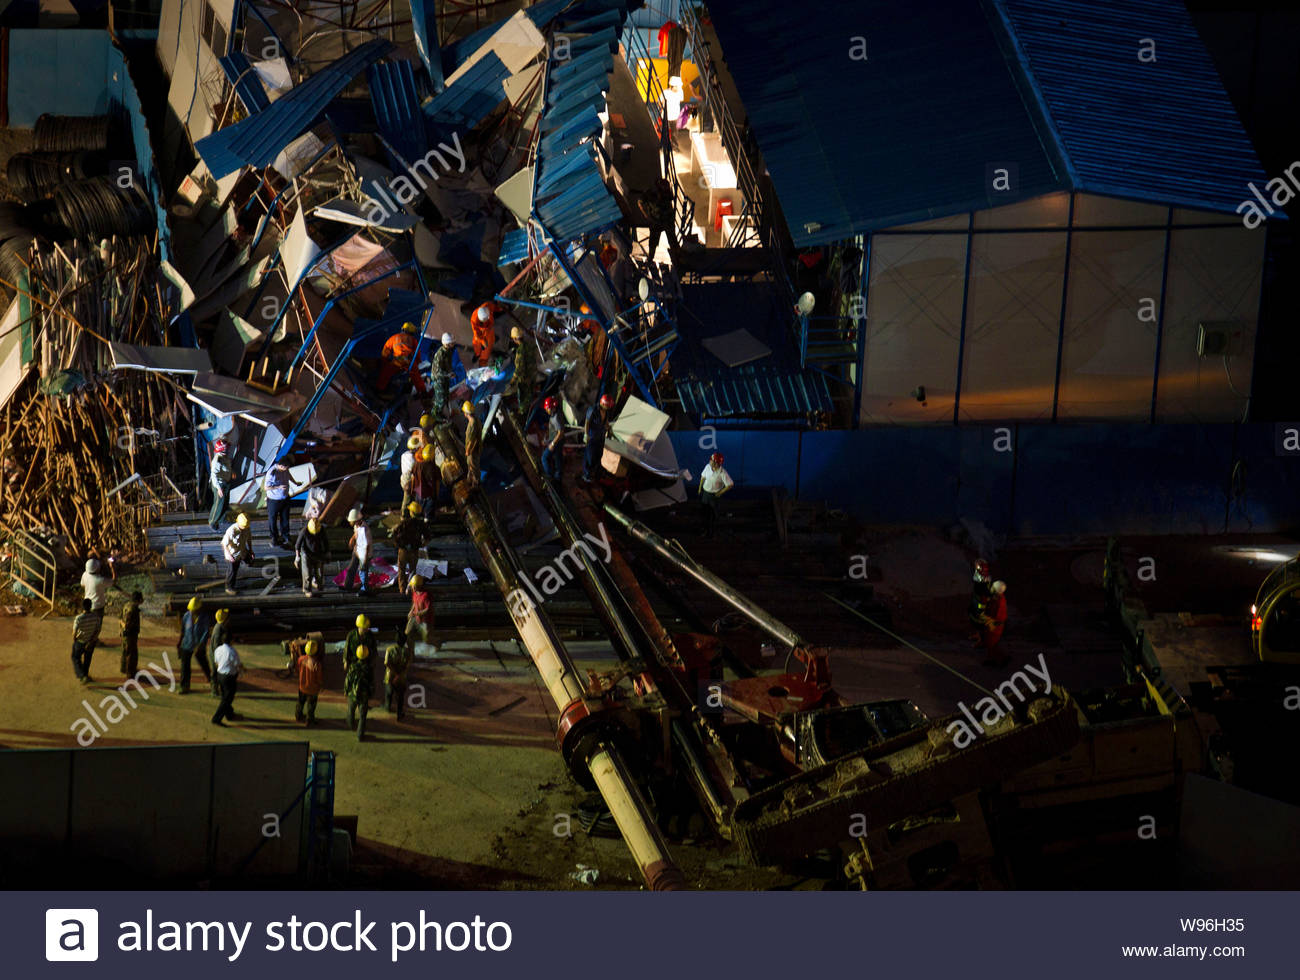 Rescuers are seen at the accident site where a pile driver toppled over and destroyed a shed in Shenzhen, south Chinas Guangdong province, 14 April 20 Stock Photo